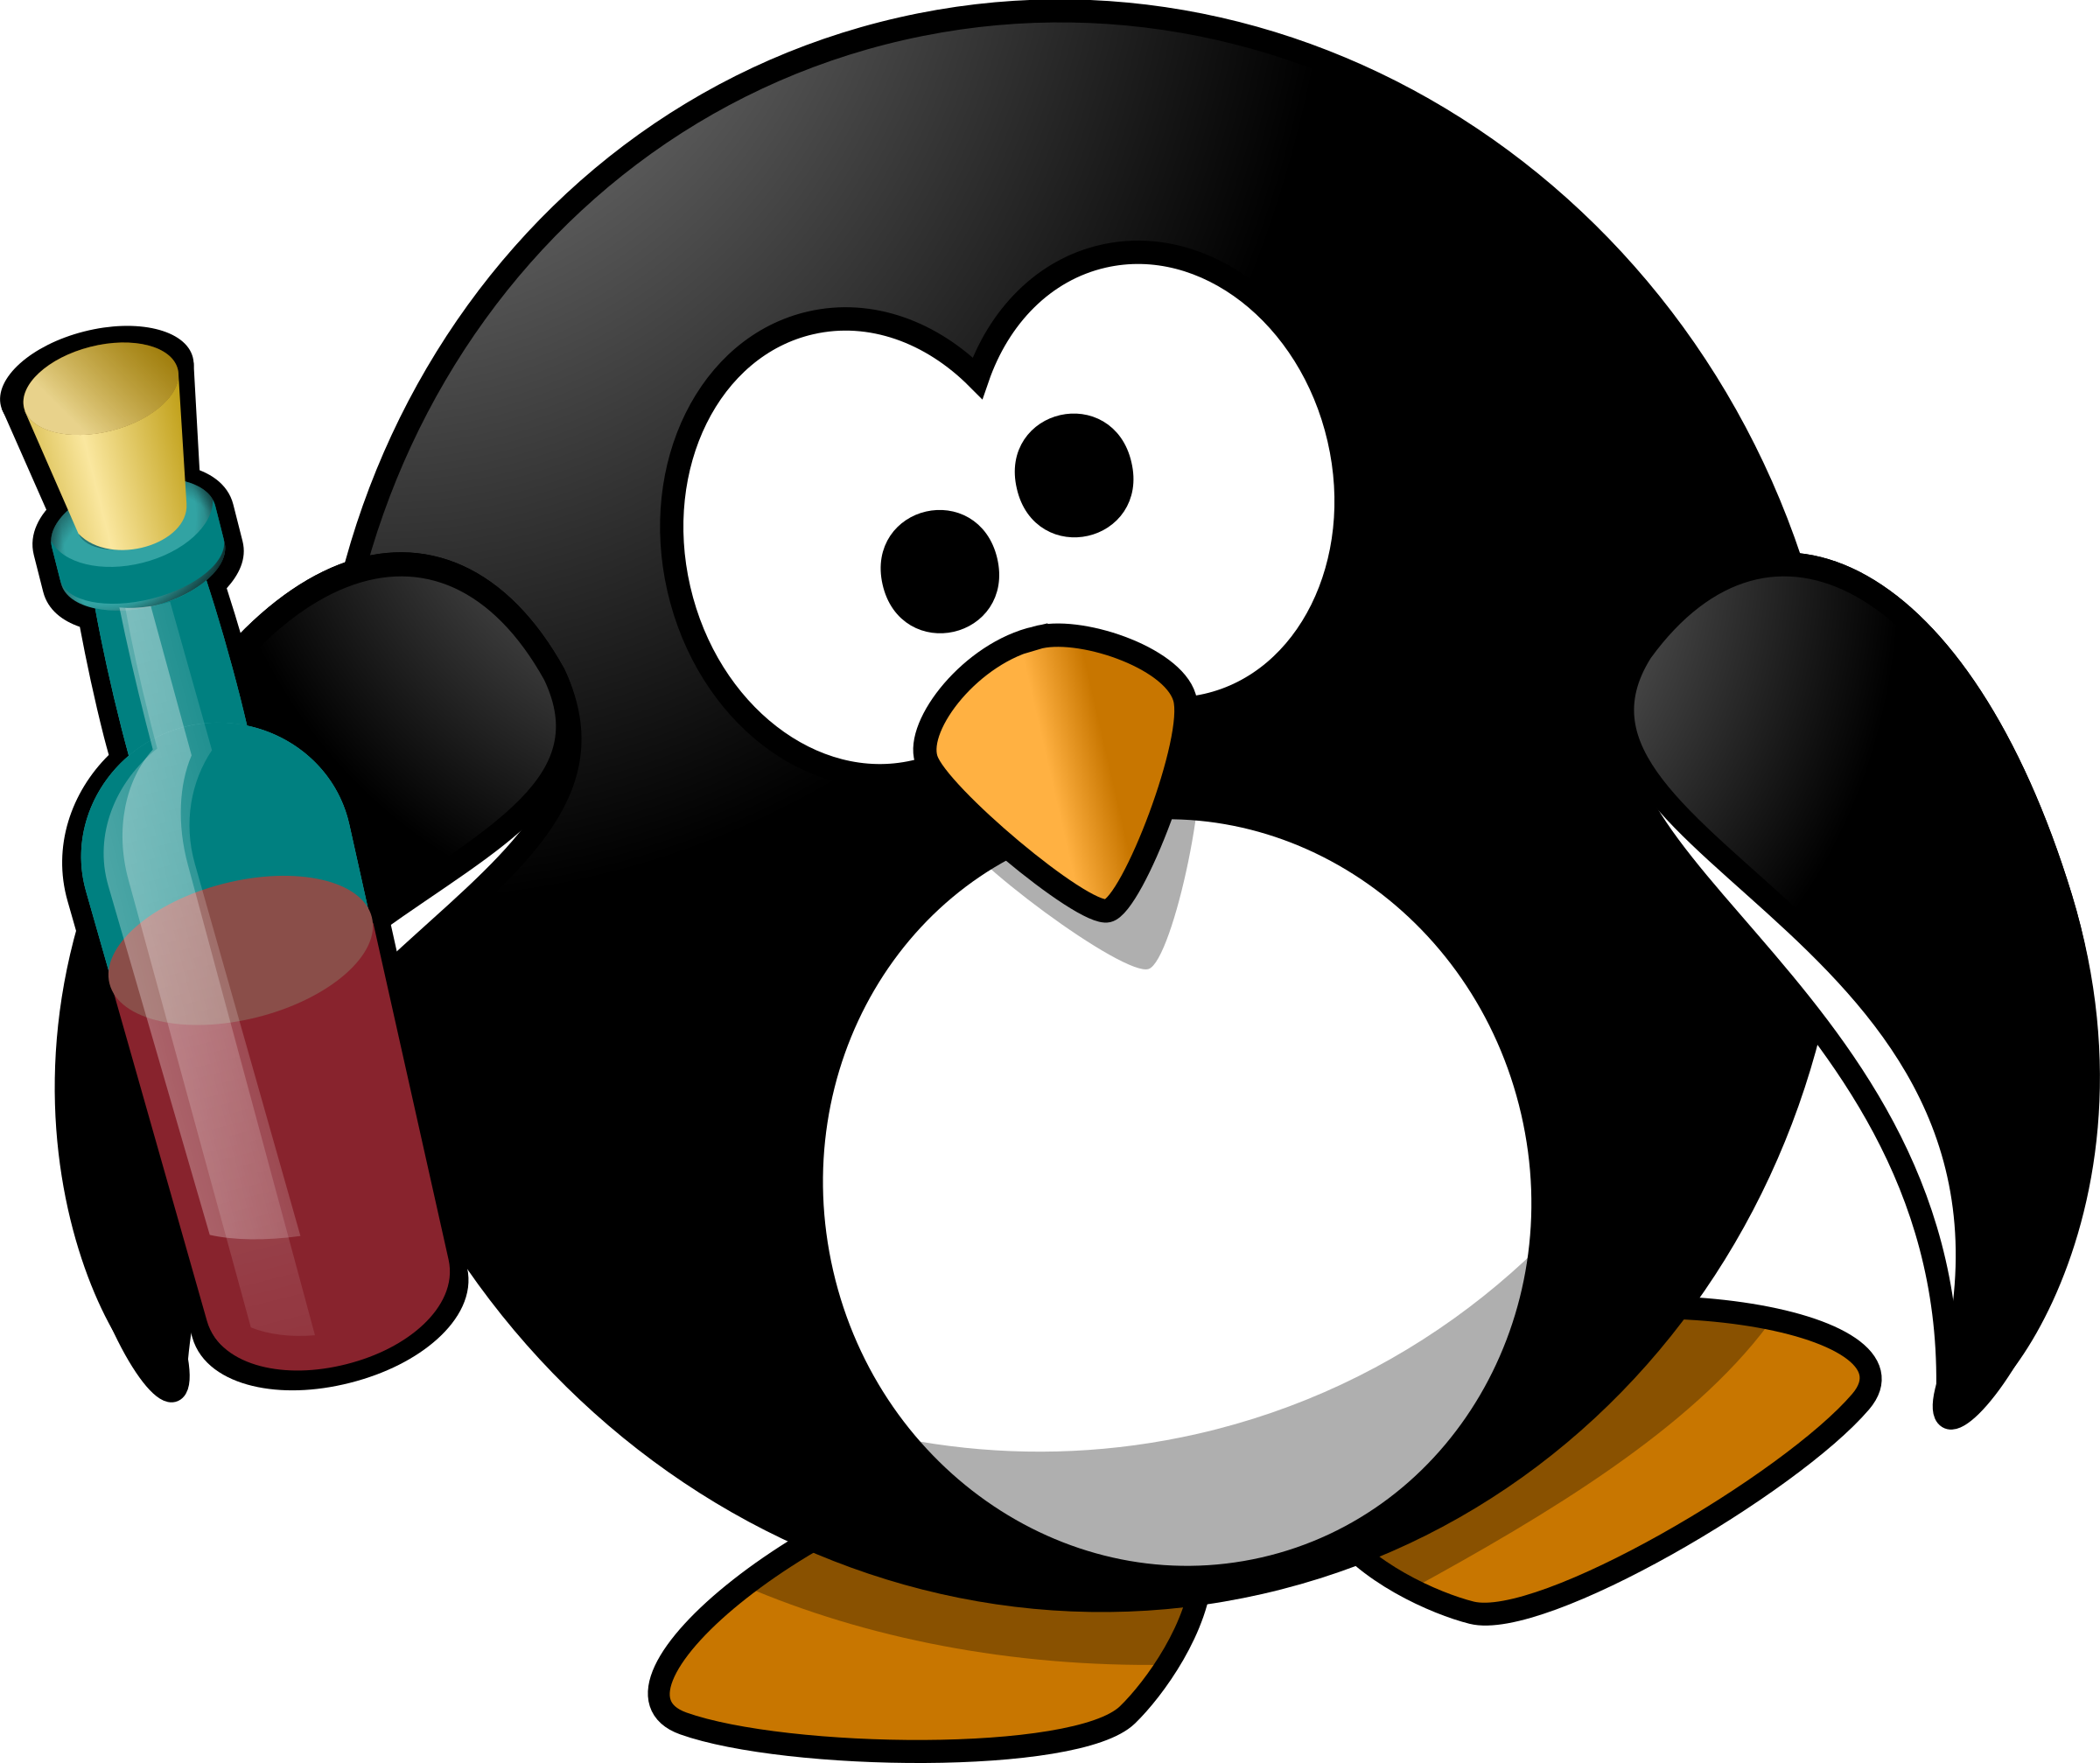 Open clipart penguin, Open penguin Transparent FREE for.